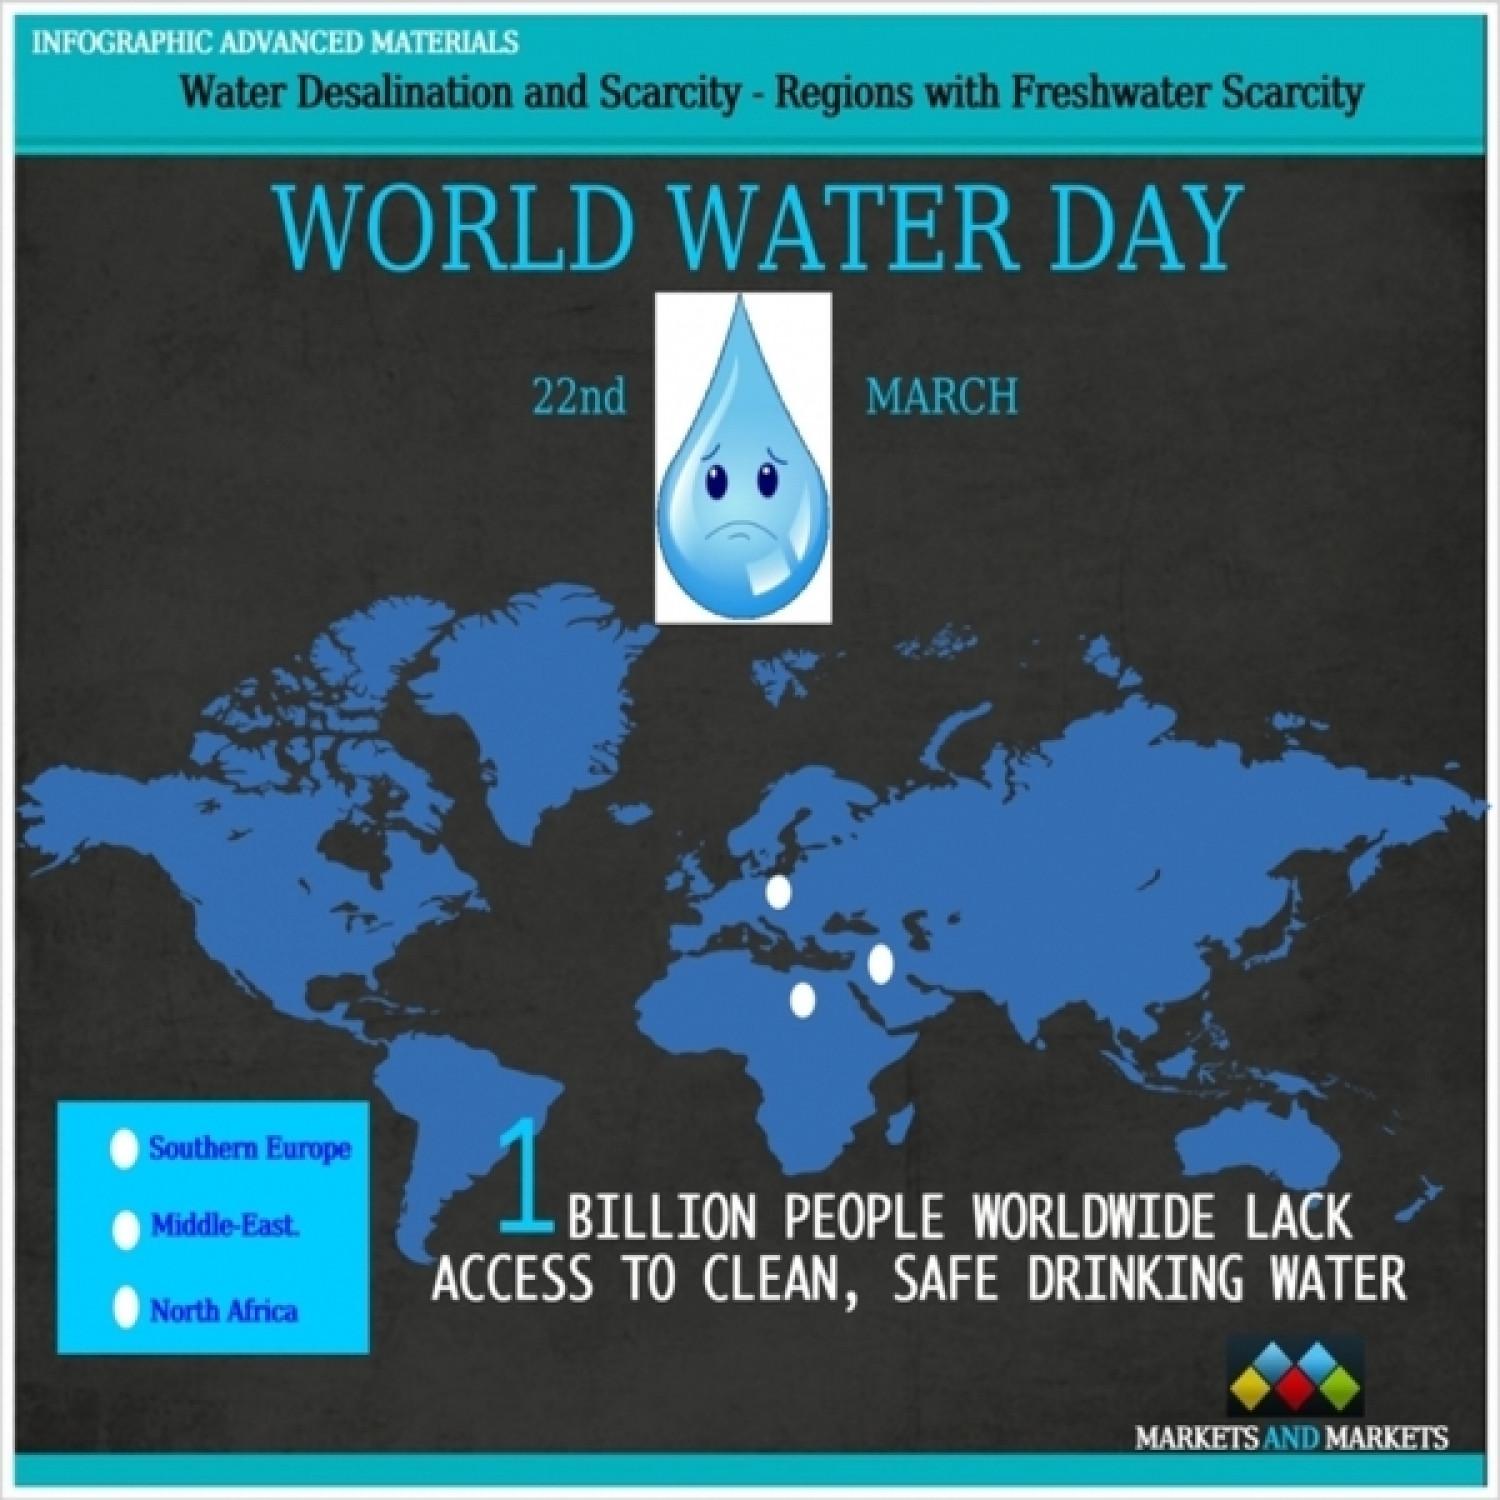 World Water Day and Market Research Insight by MarketsandMarkets Infographic